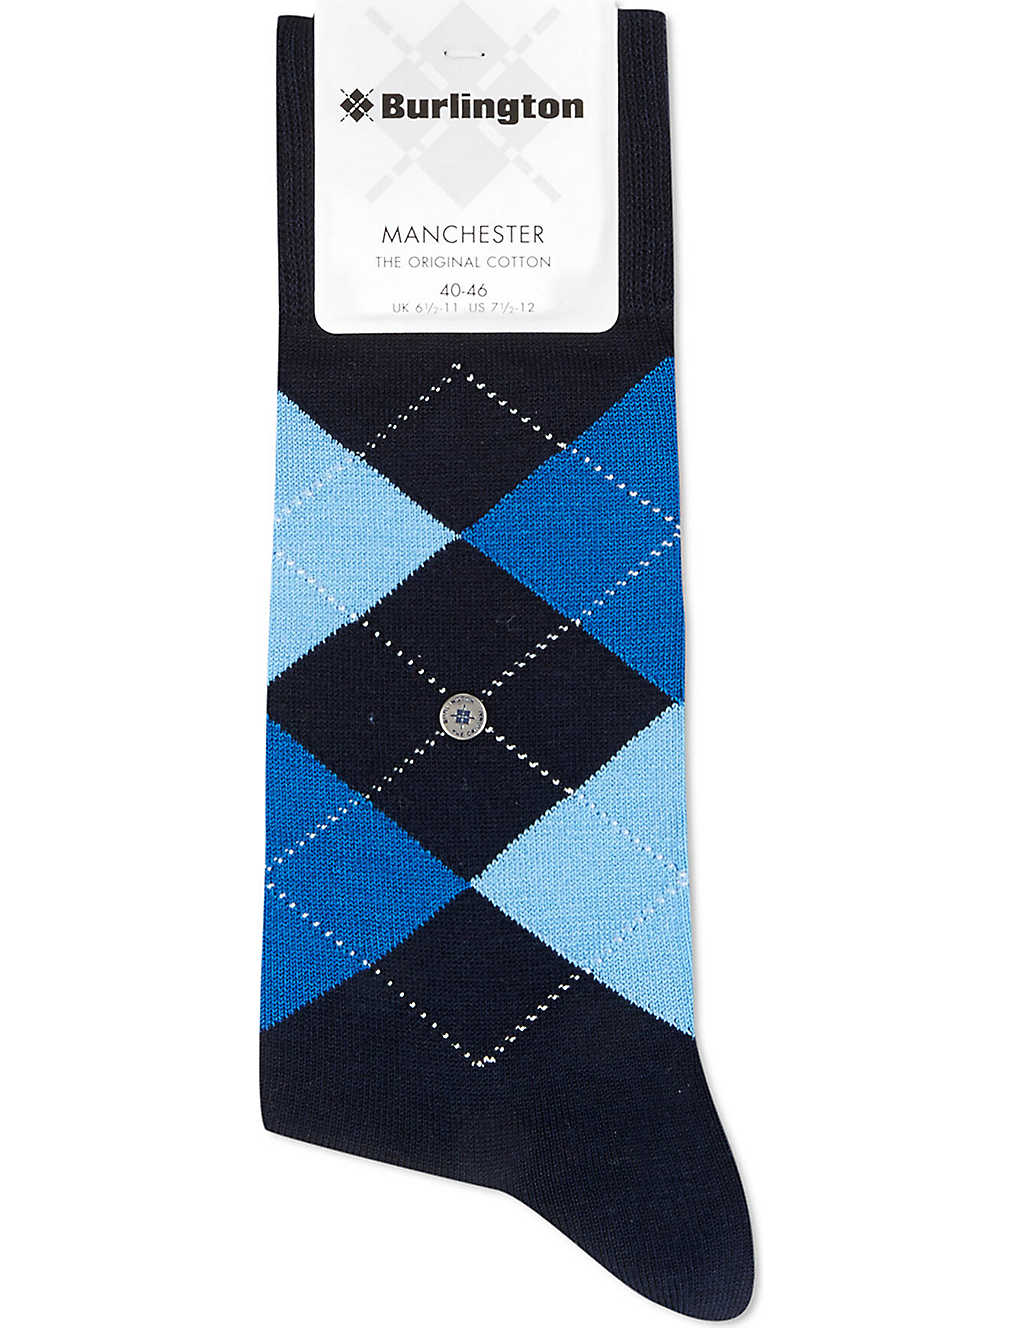 BURLINGTON: Manchester original cotton socks